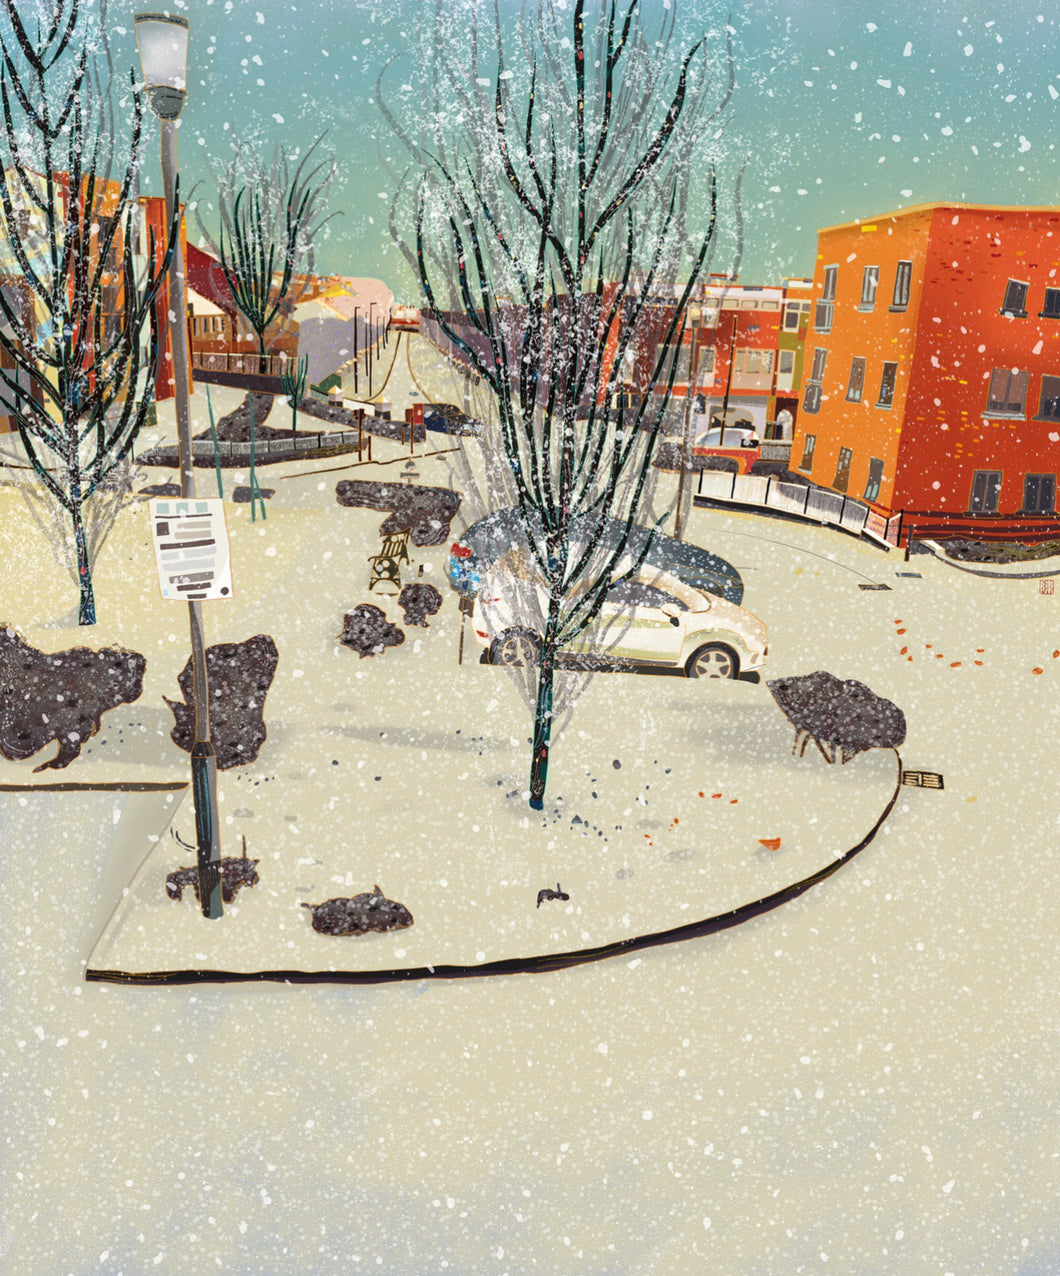 Wintry Tannoy Square local art illustration poster print wall decor